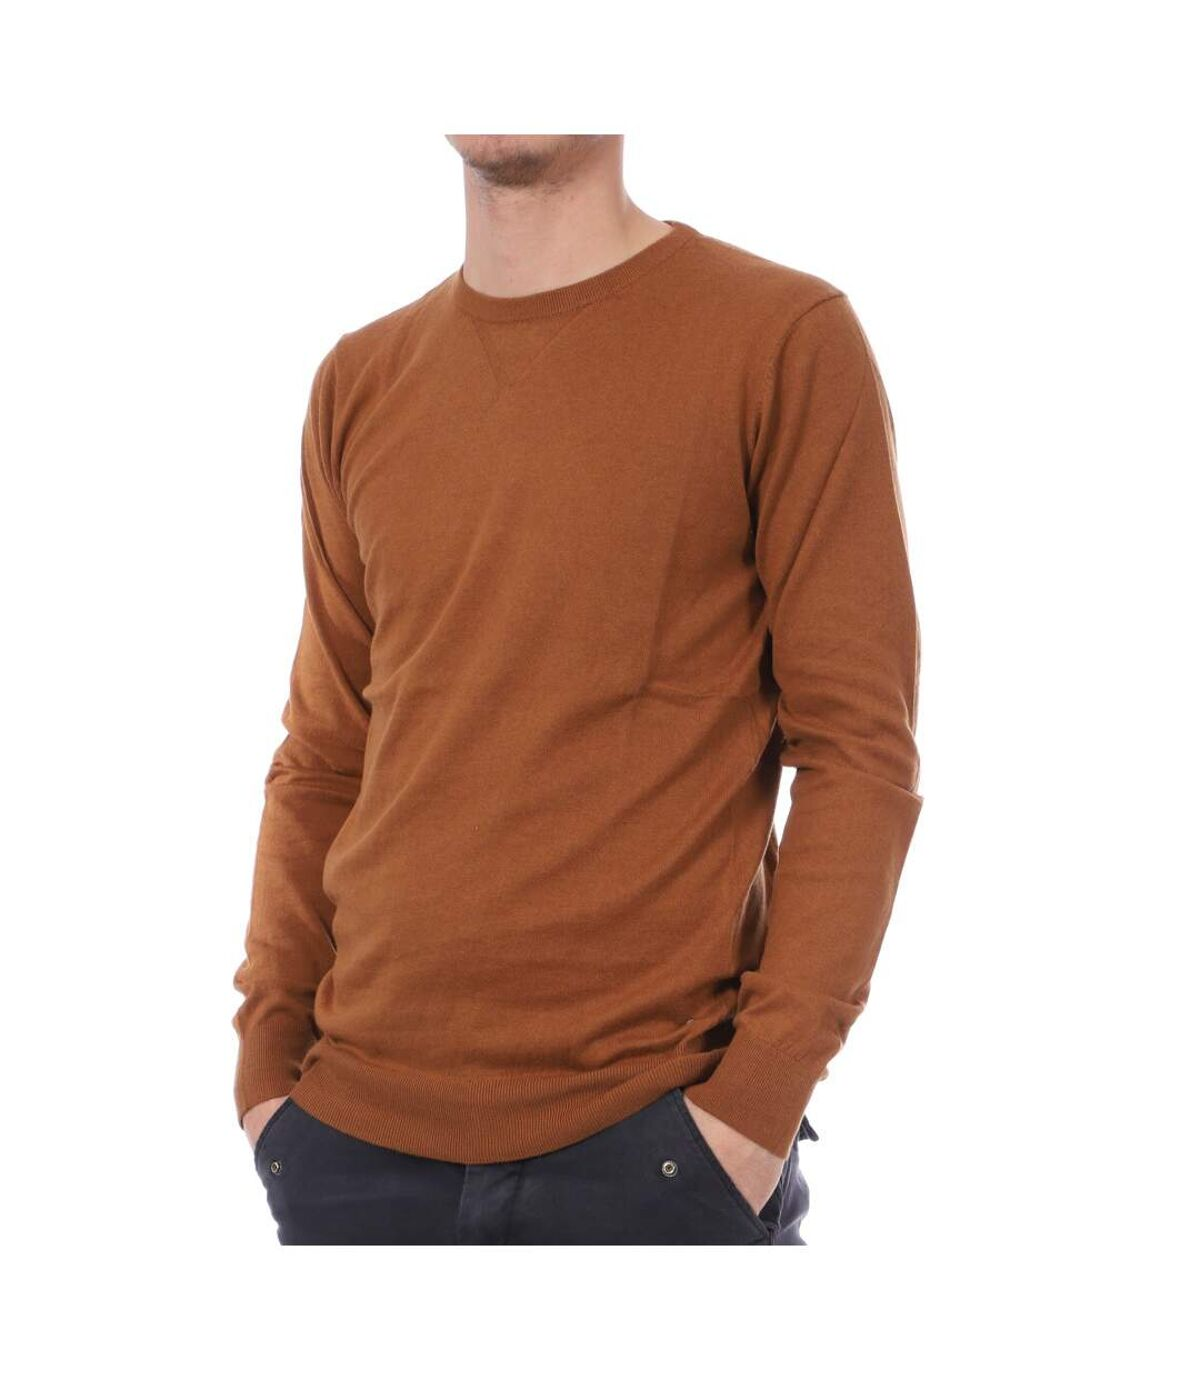 Pull Camel Homme Teddy Smith P-Ethan